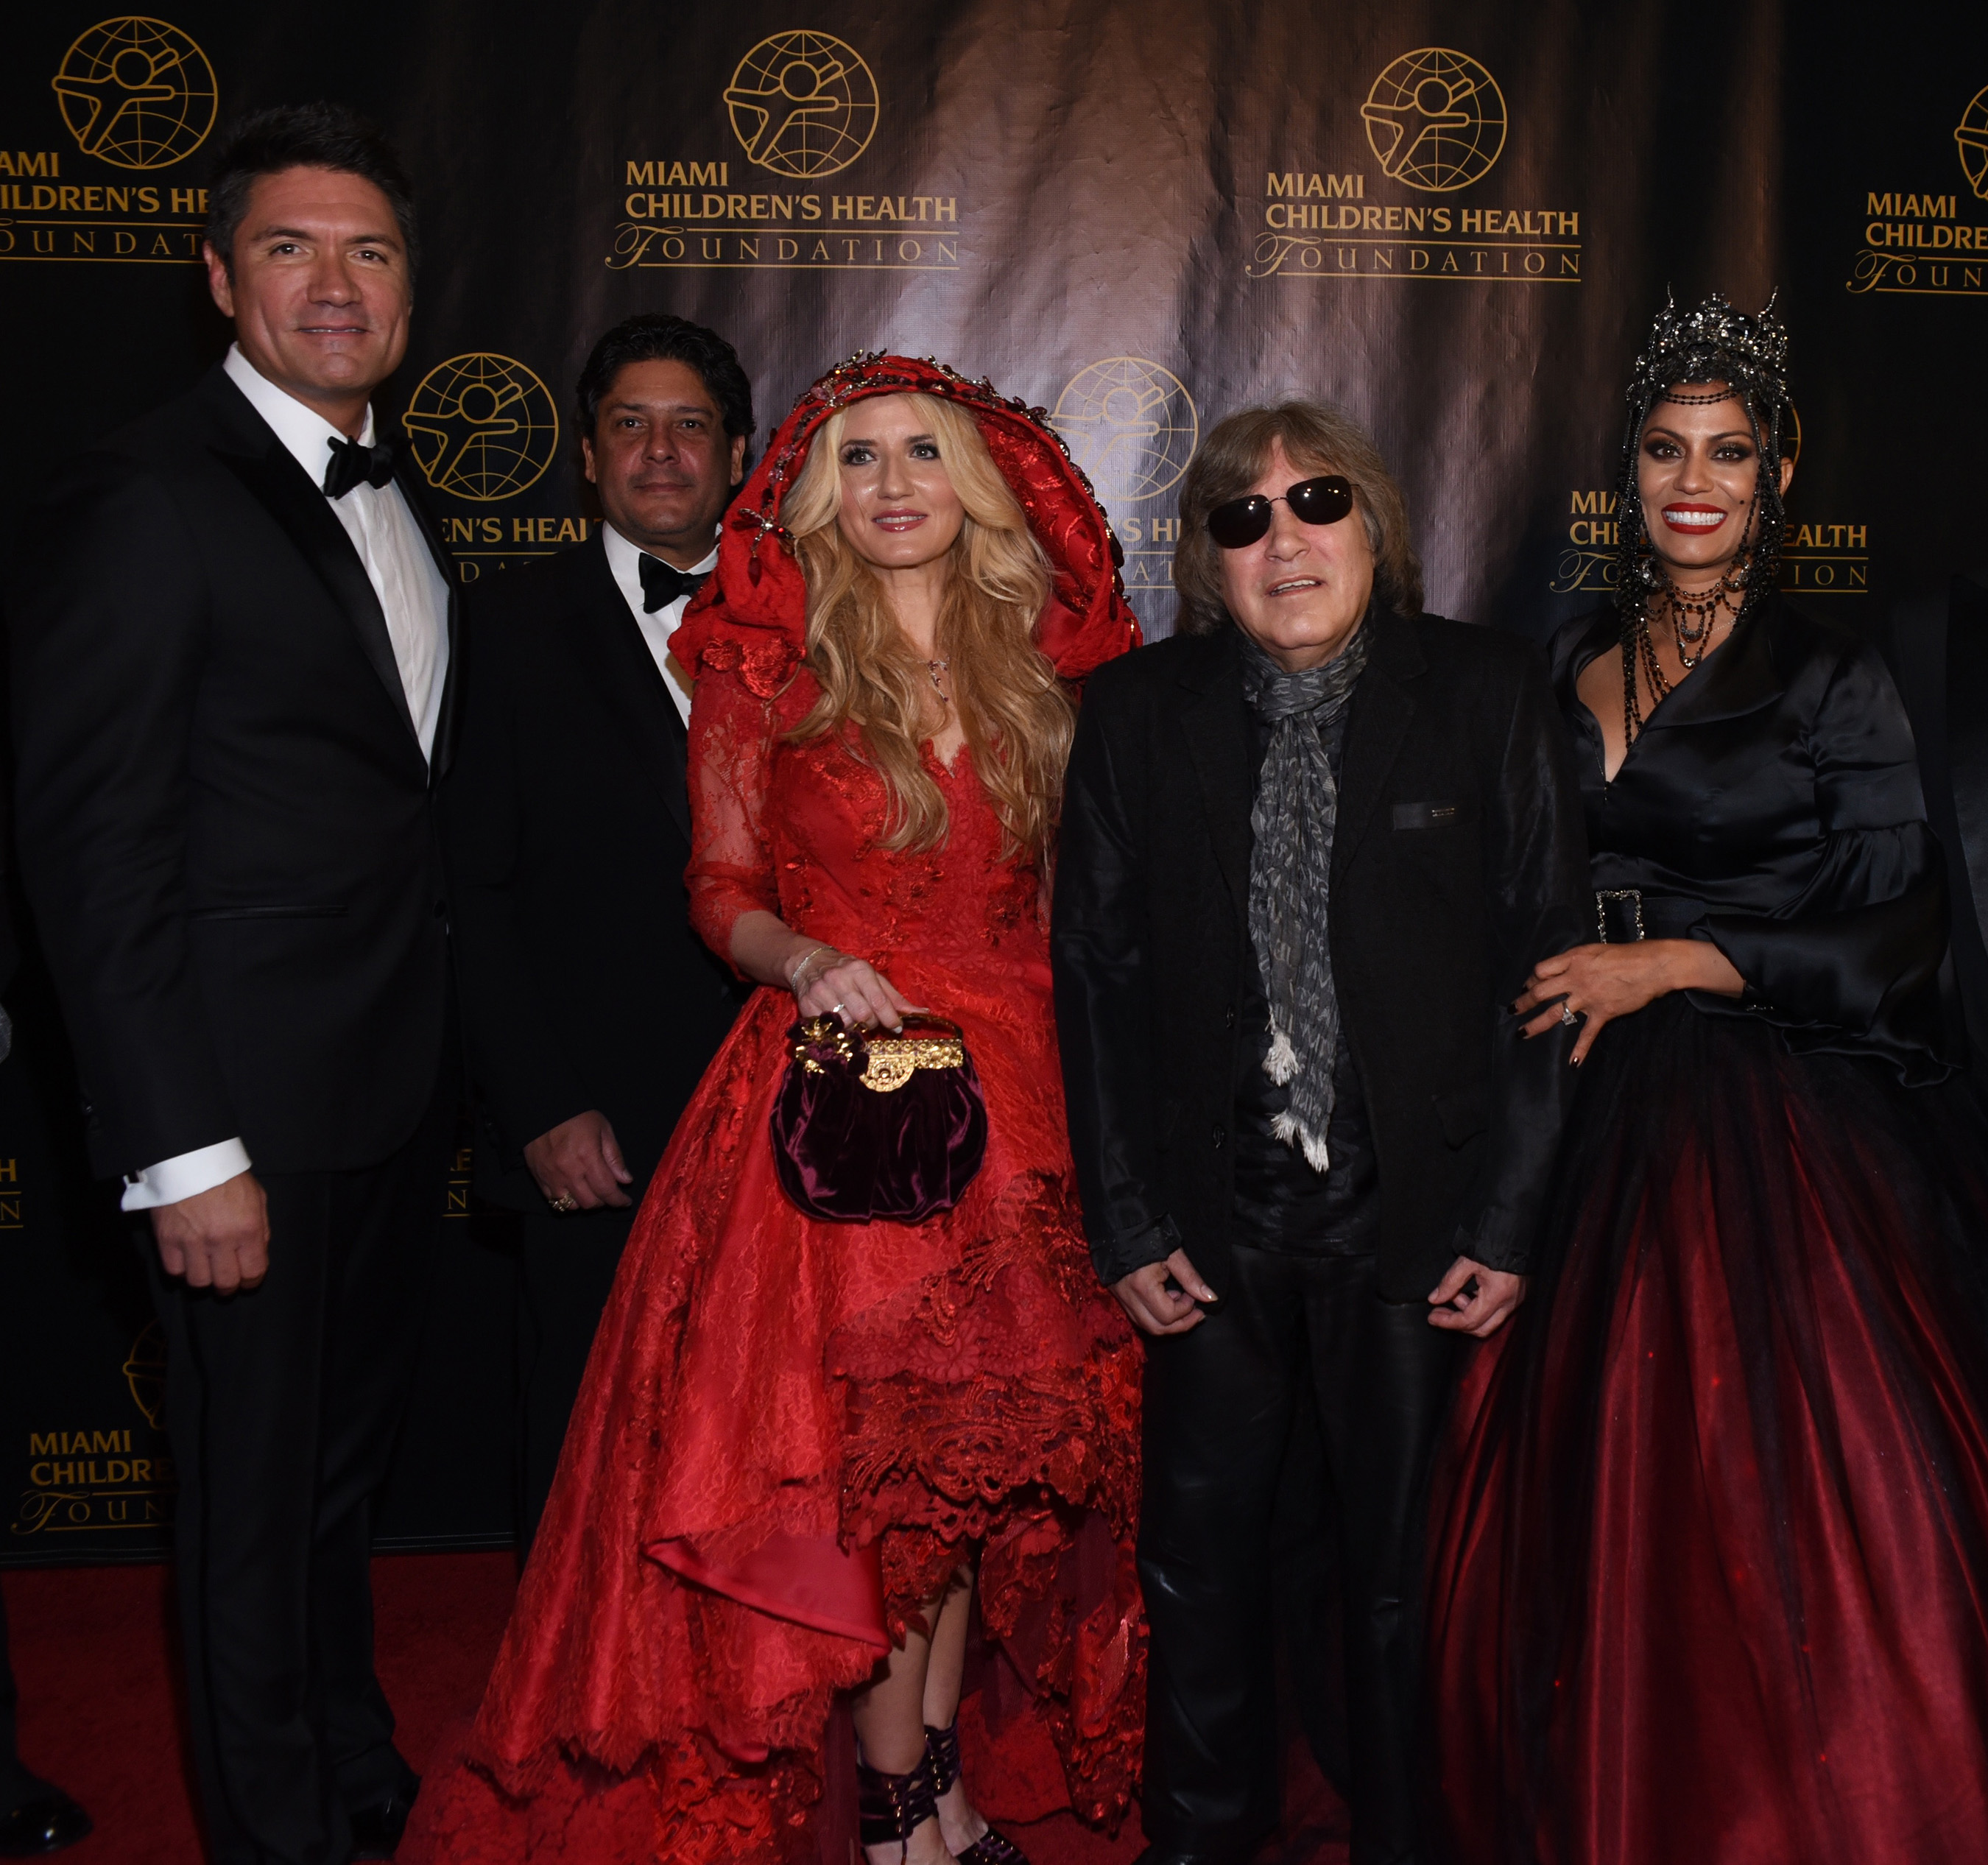 Louis Aguirre, Master of Ceremonies, Jorge Luis and Marile Lopez, Board Chair of Miami Children's Health Foundation, Jose Feliciano, Pediatric Hall of Fame inductee and Lucy Morillo